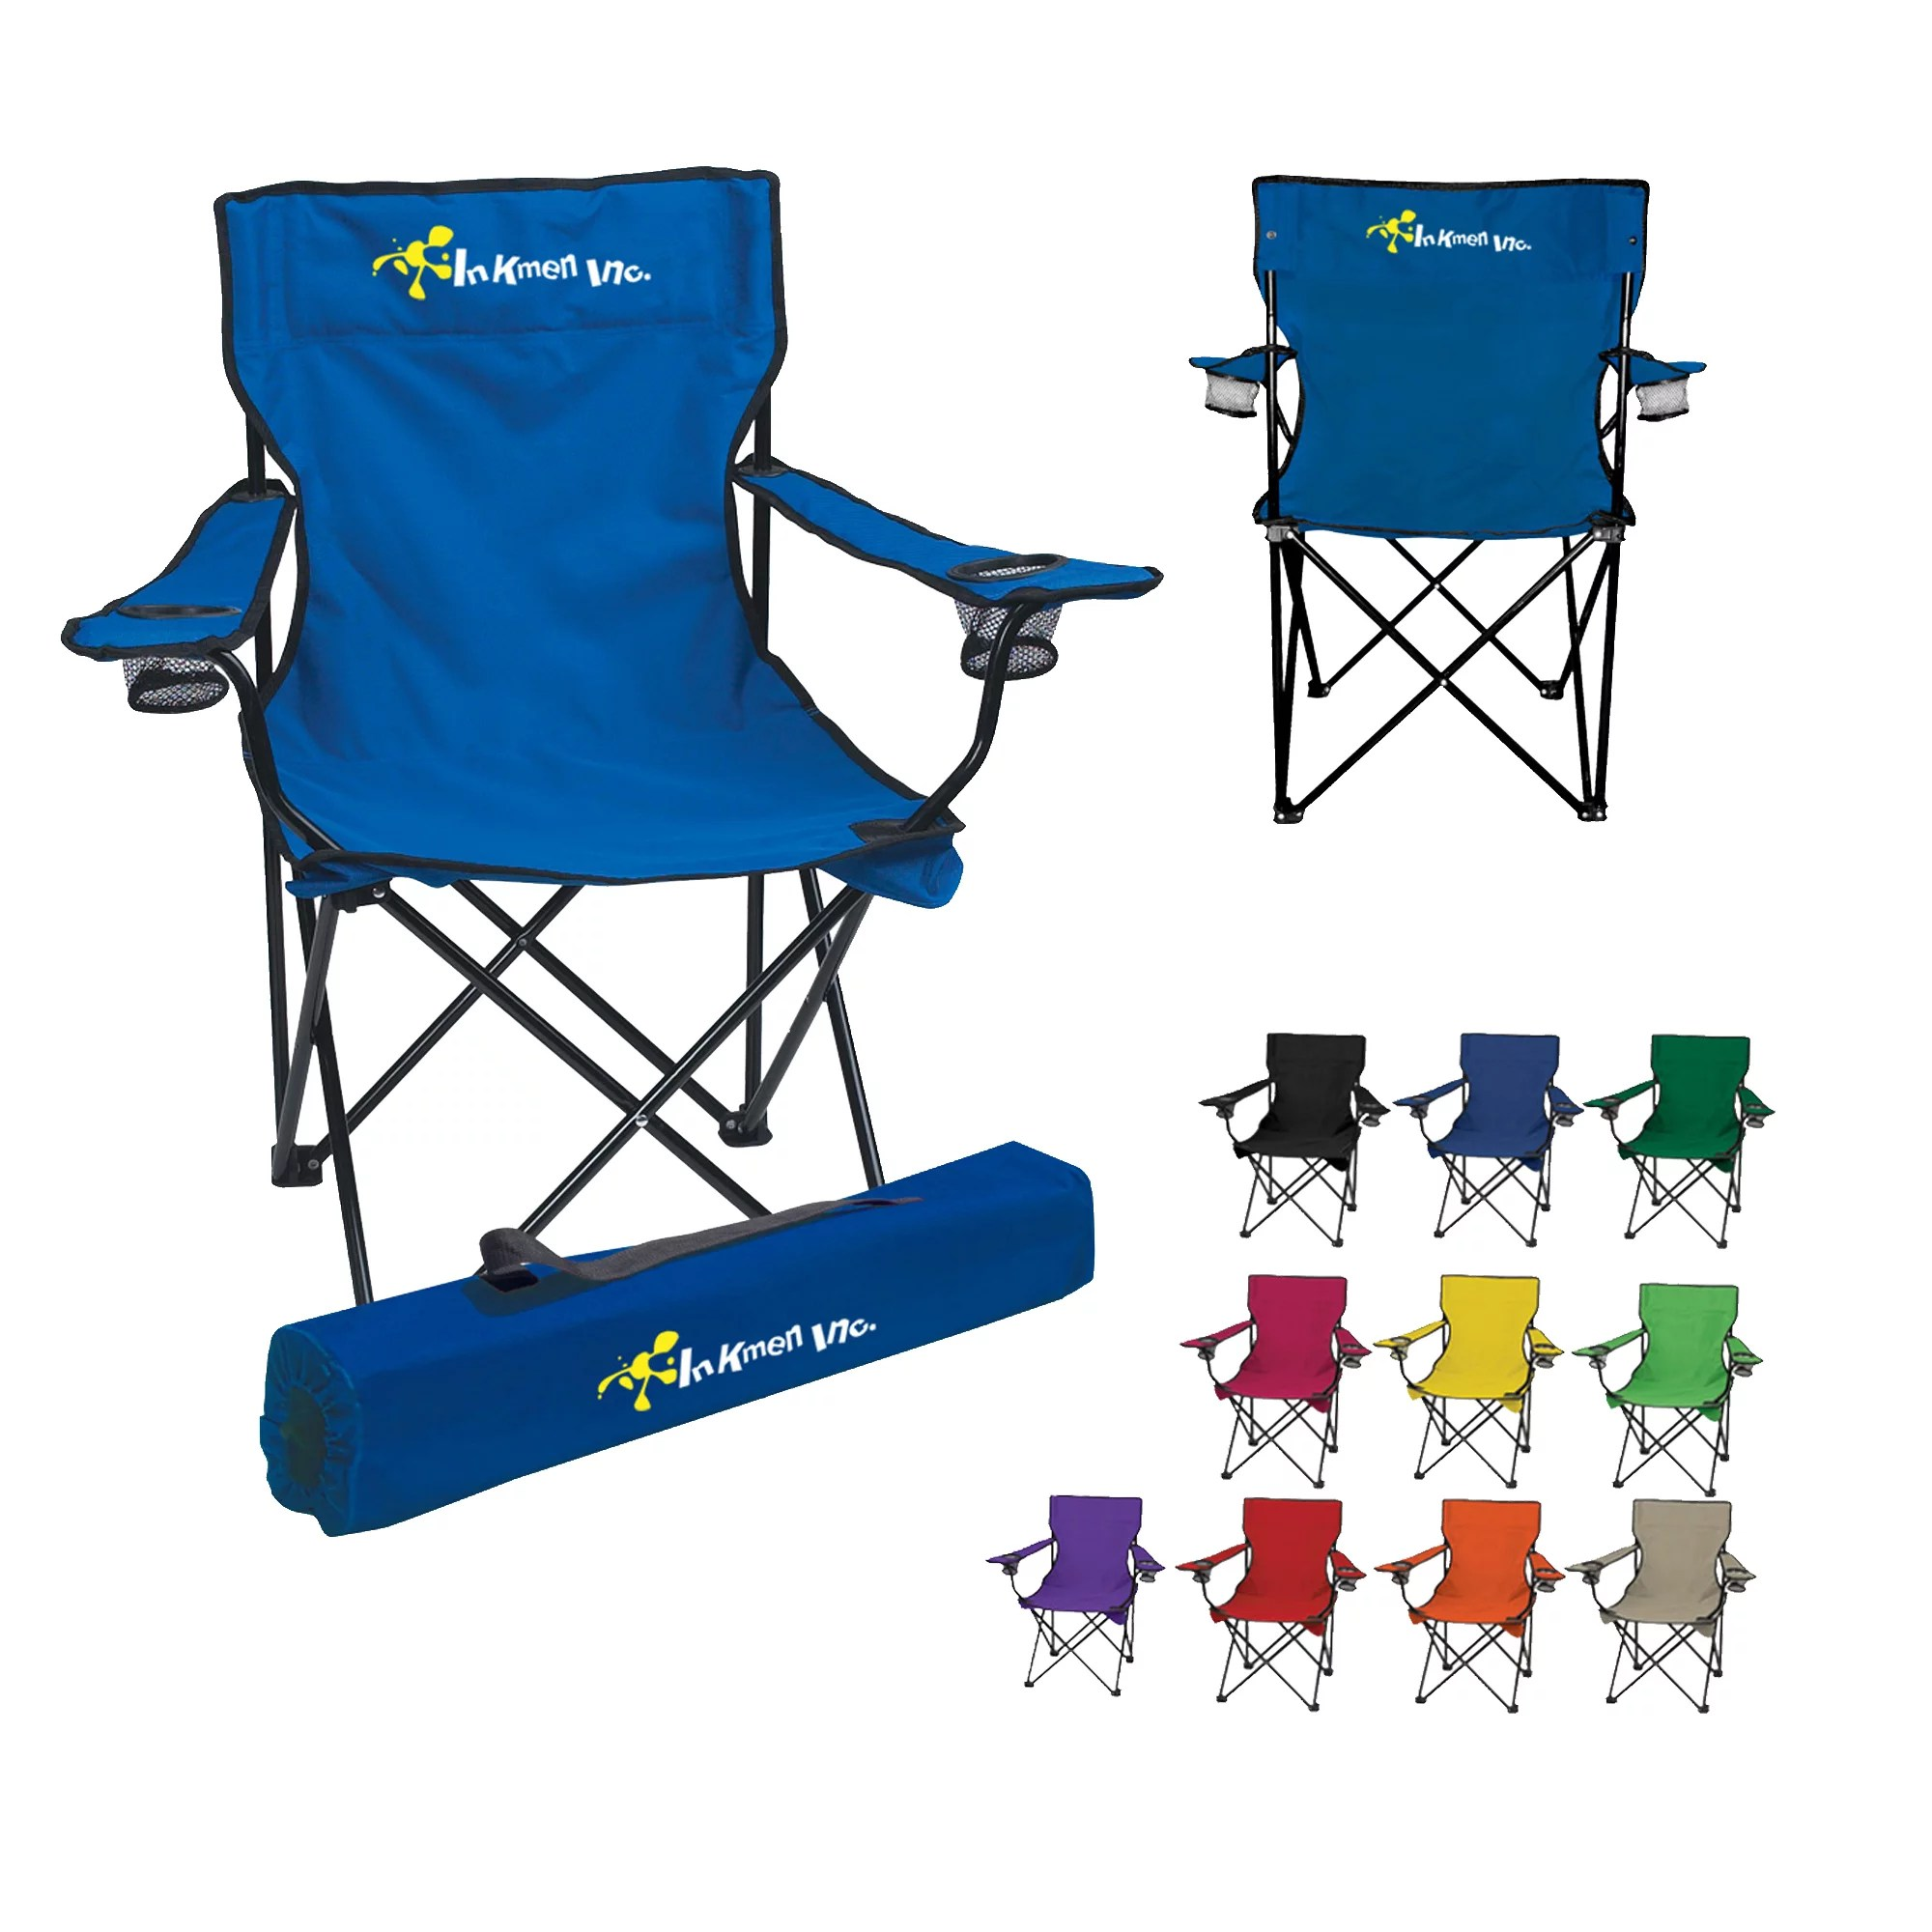 Folding Sleeping Chair Folding Chair With Carry Bag Promotional Folding Chair With Cup Holders National Pen